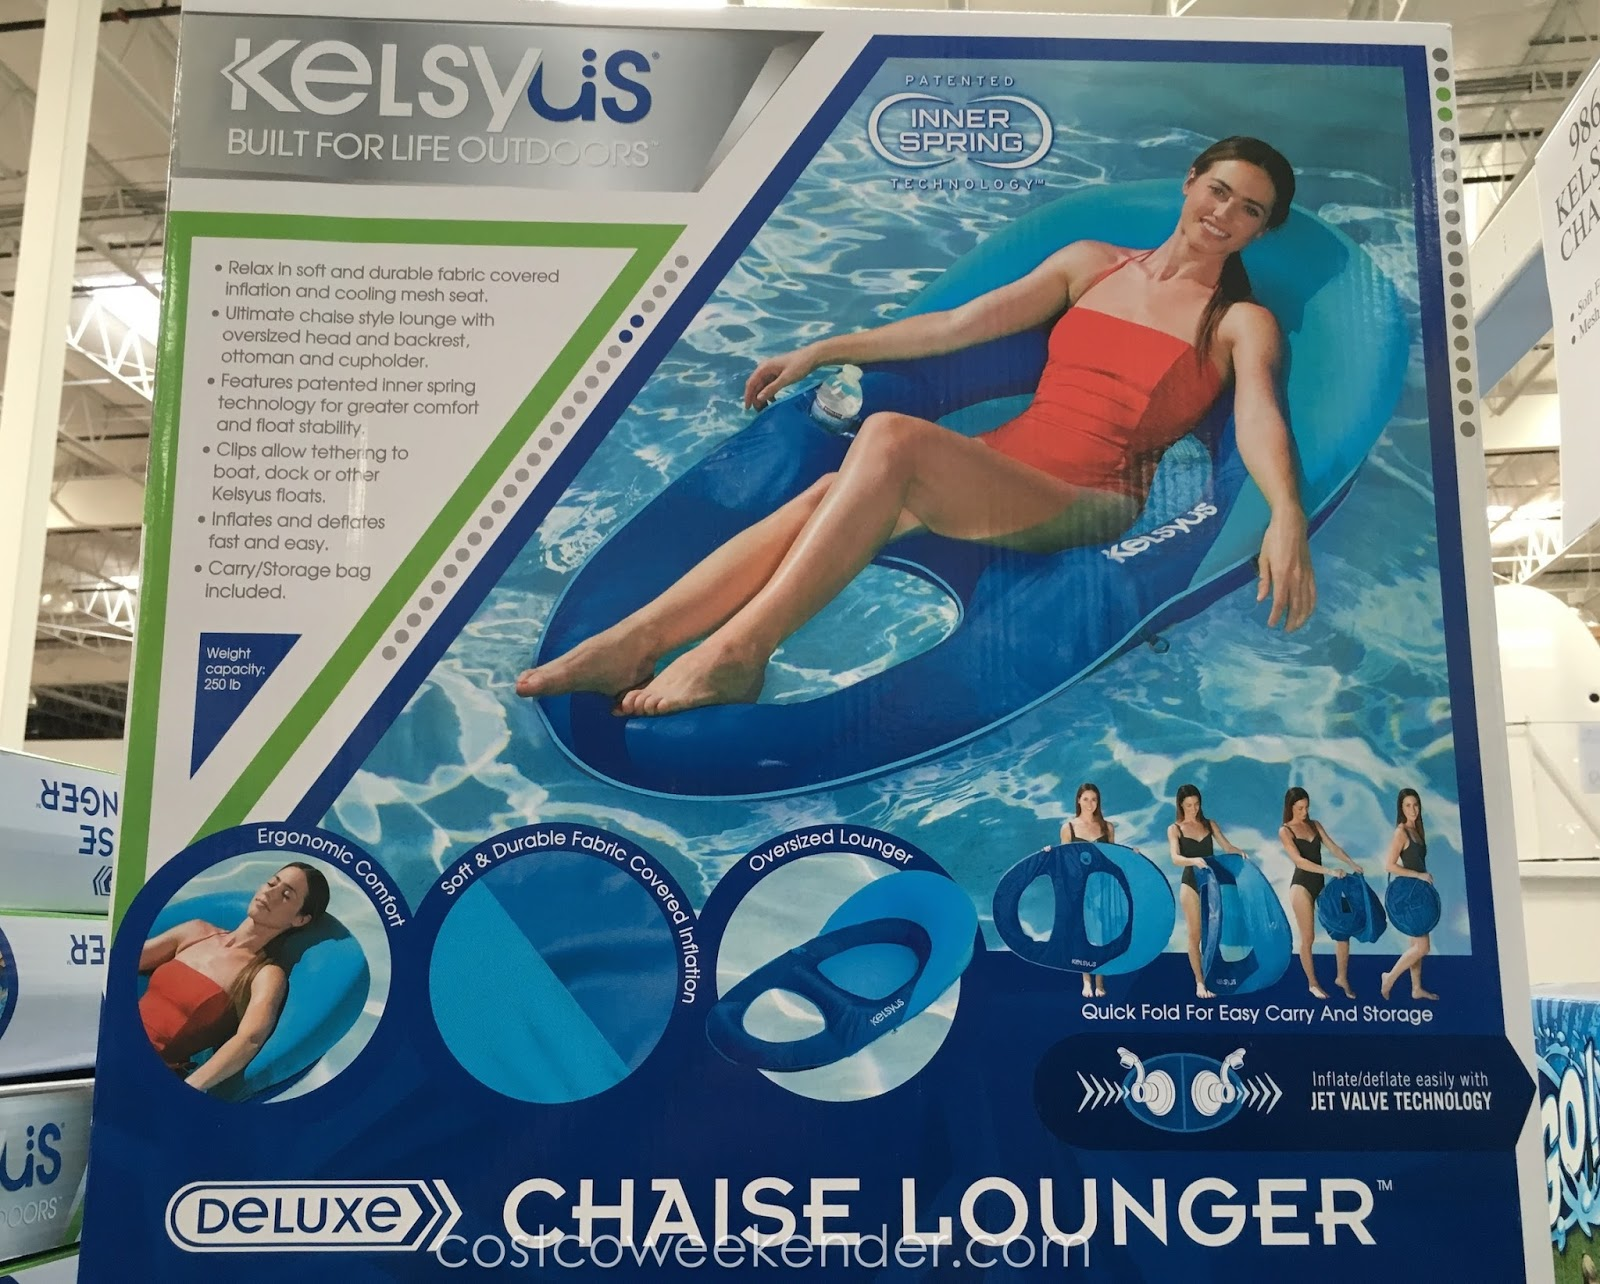 Kelsyus Deluxe Chaise Lounger